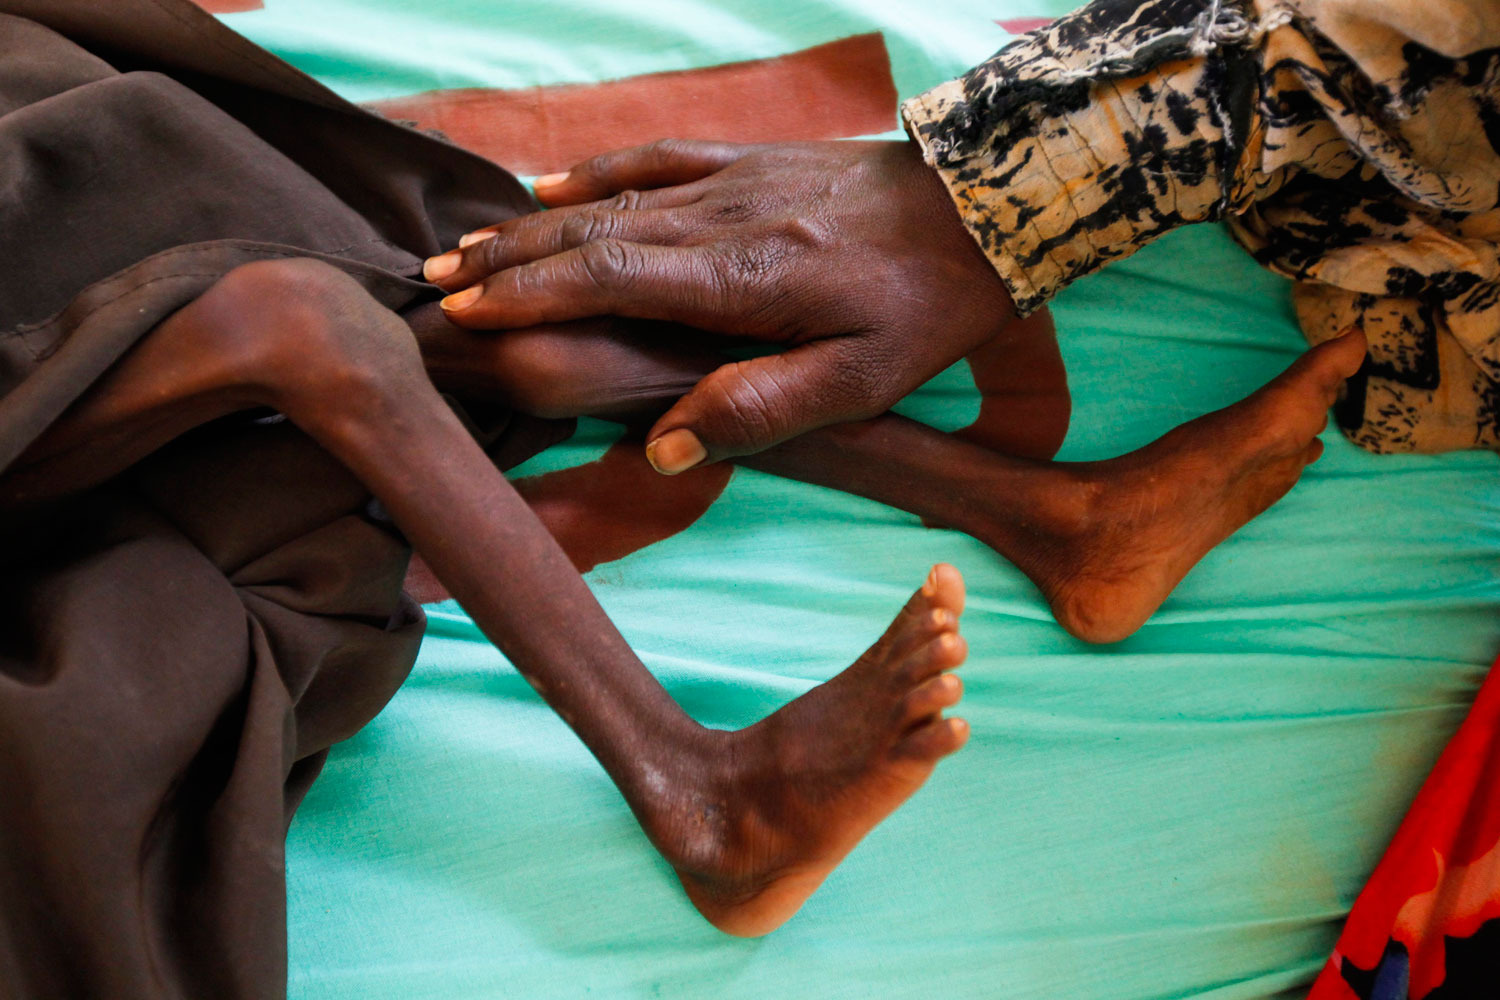 August 2, 2011. A mother of two-year-old severely malnourished Somali refugee boy Fariyo Yusuf puts her hand on her son's leg at a hospital run by GIZ, Deutsche Gesellschaft fuer Internationale Zusammenarbeit, at the Ifo camp, one of three camps that make up sprawling Dadaab refugee camp, in Dadaab, northeastern Kenya.